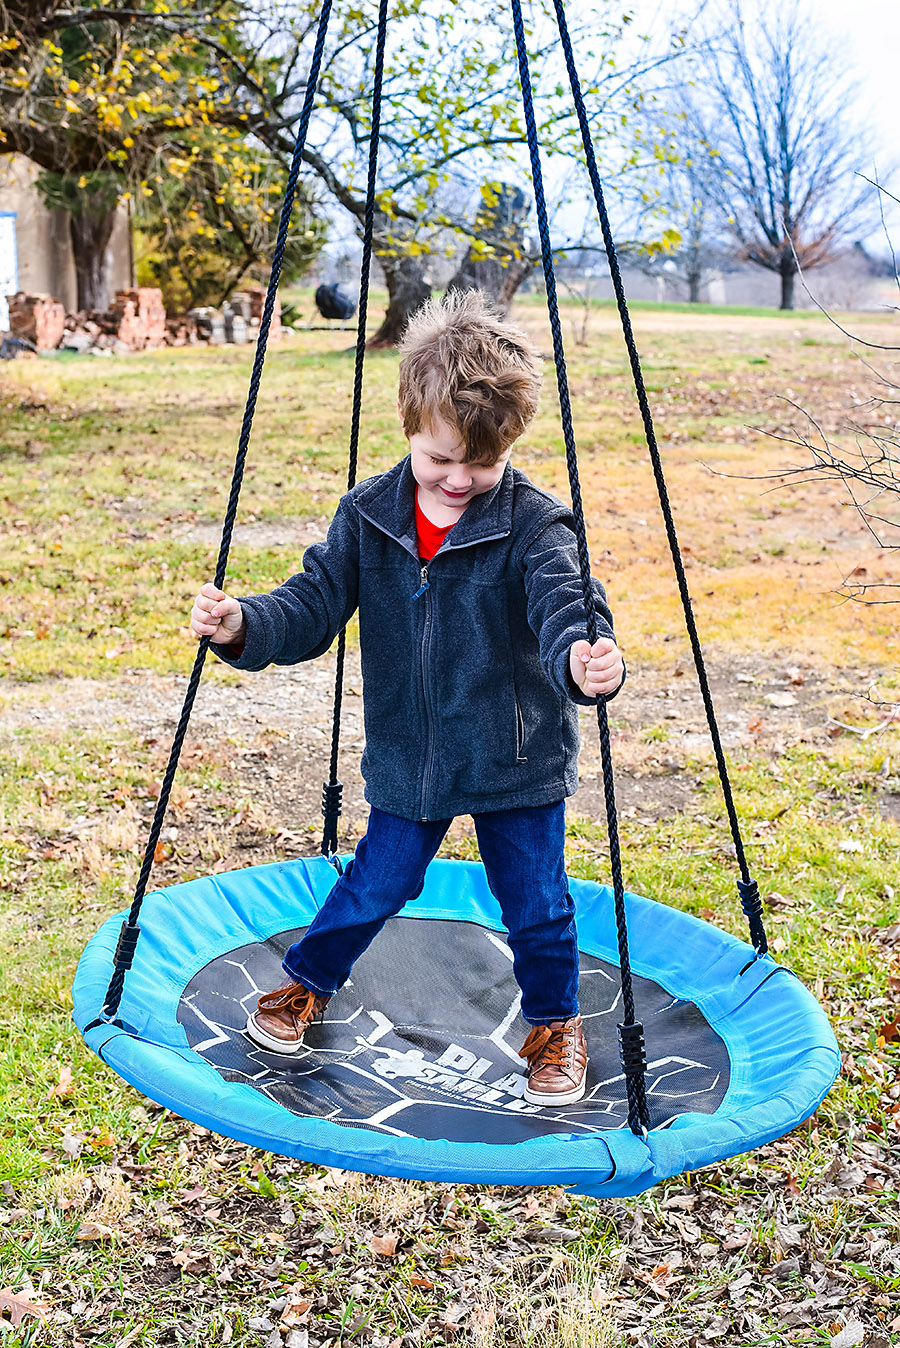 Tree Swing - Simple Toys Gift Ideas - Intentional Purposeful Gift Guide for Kids - Our Handcrafted Life